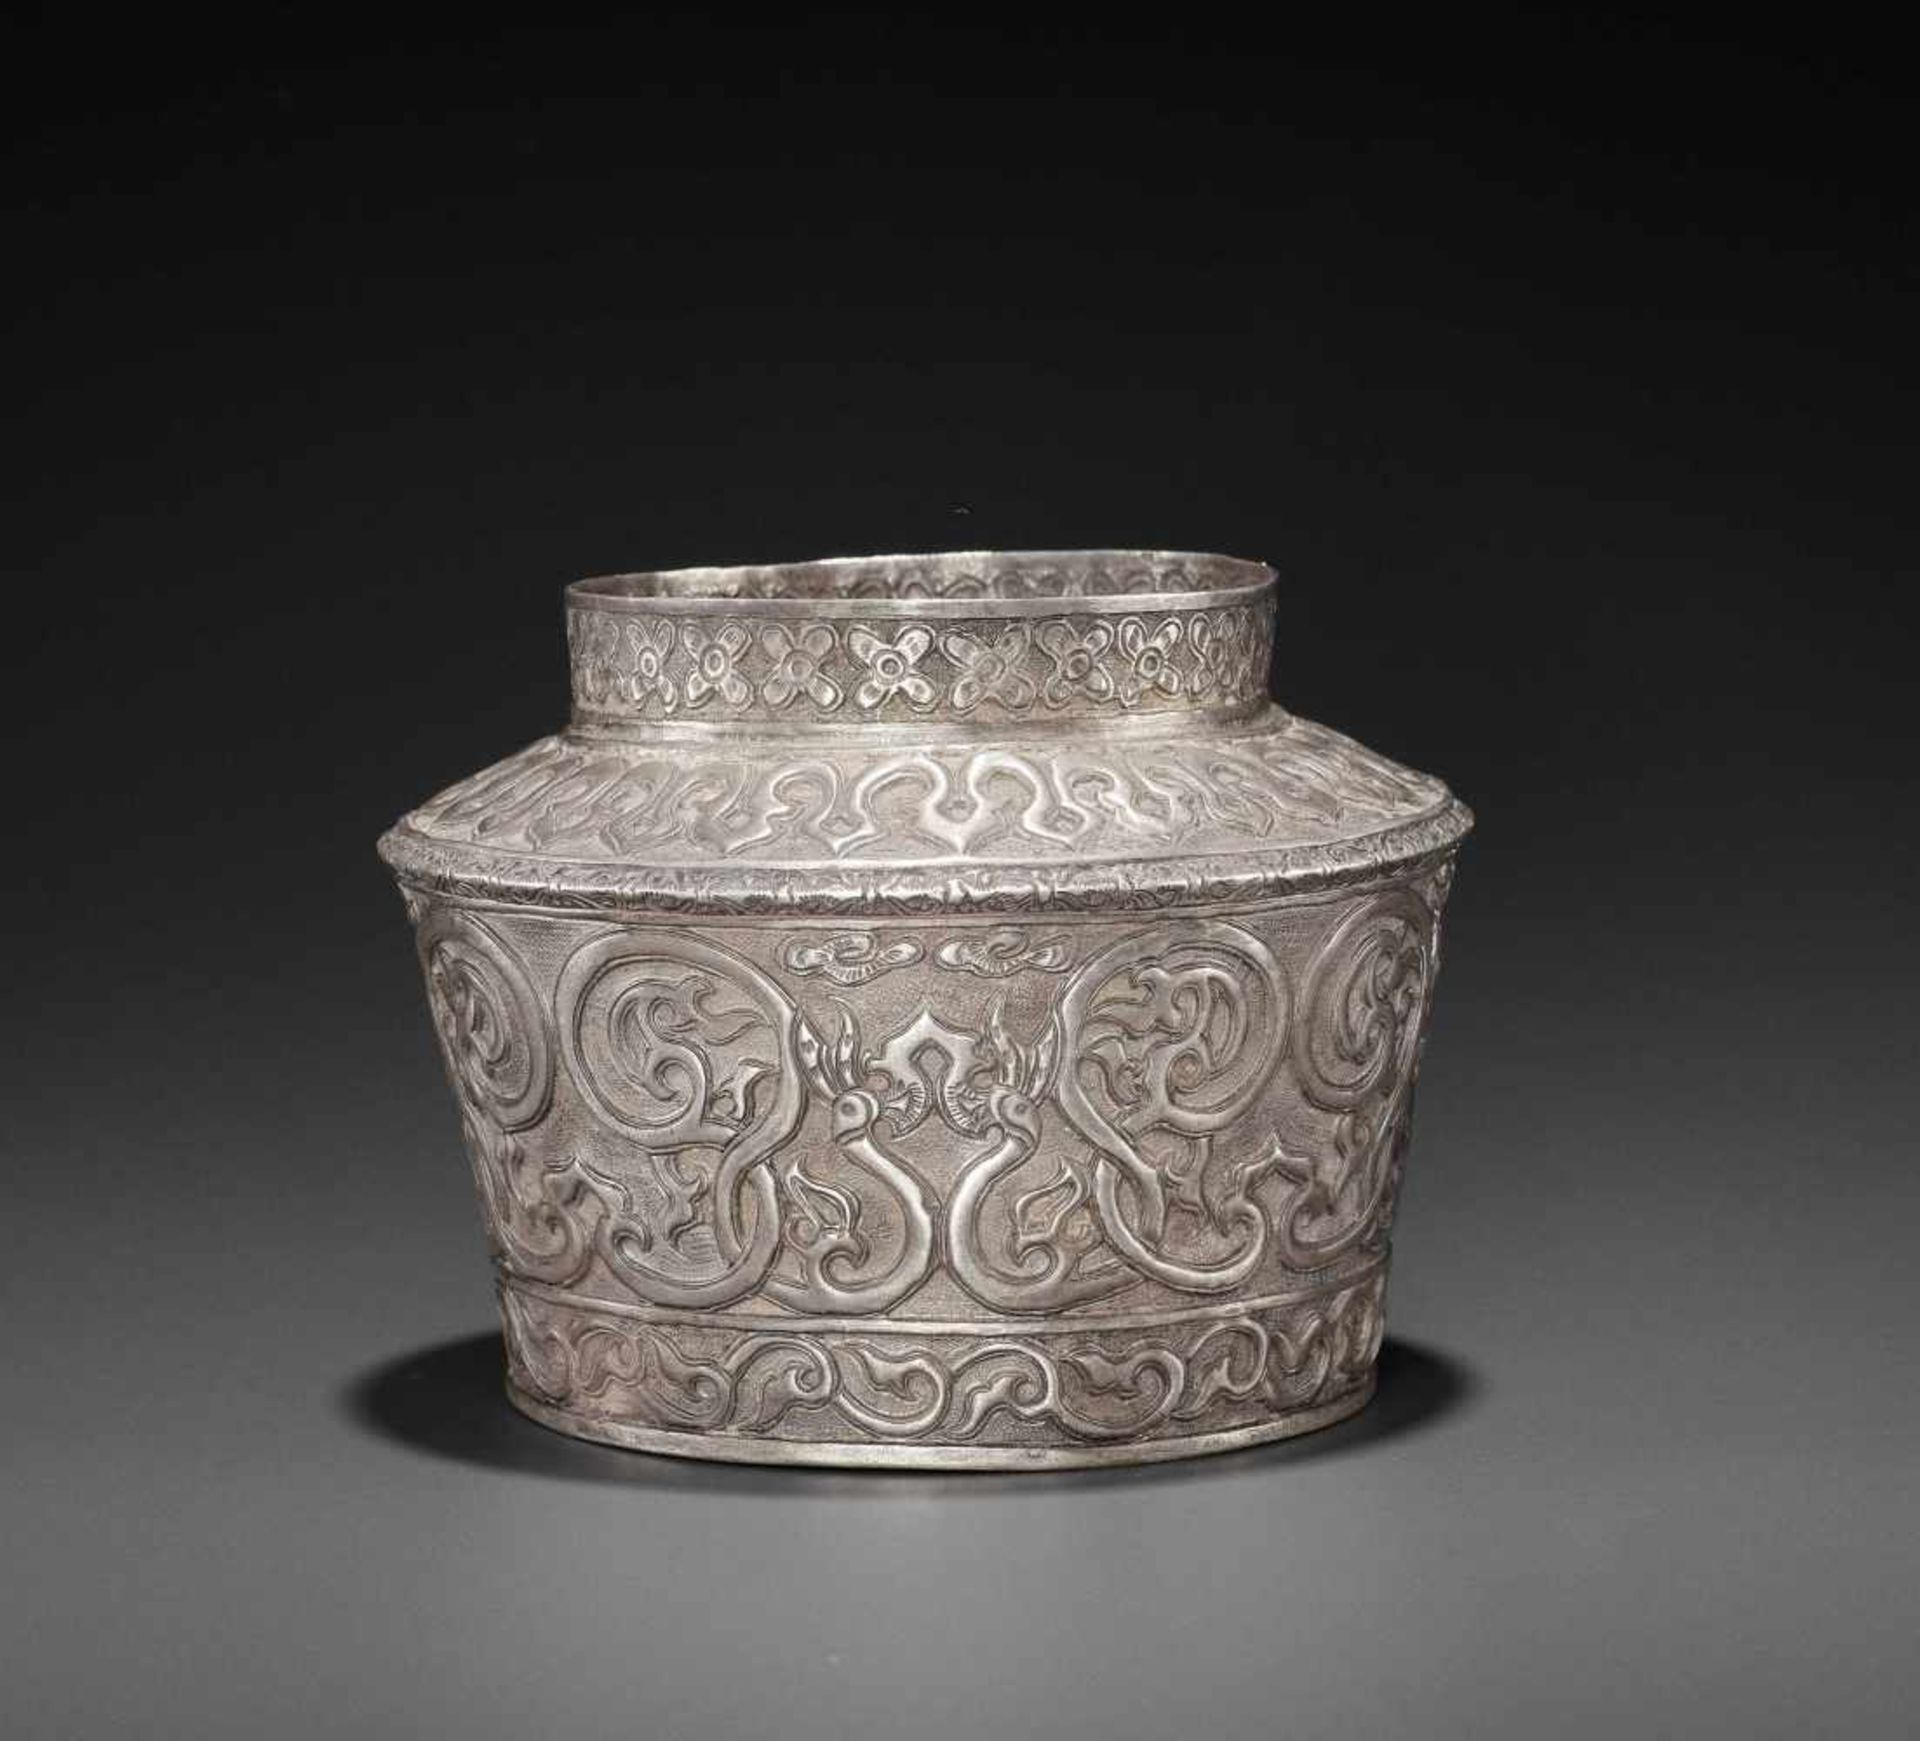 AN EXTREMELY RARE AND FINE CHAM SILVER REPOUSSÉ BOWL WITH PHOENIXES